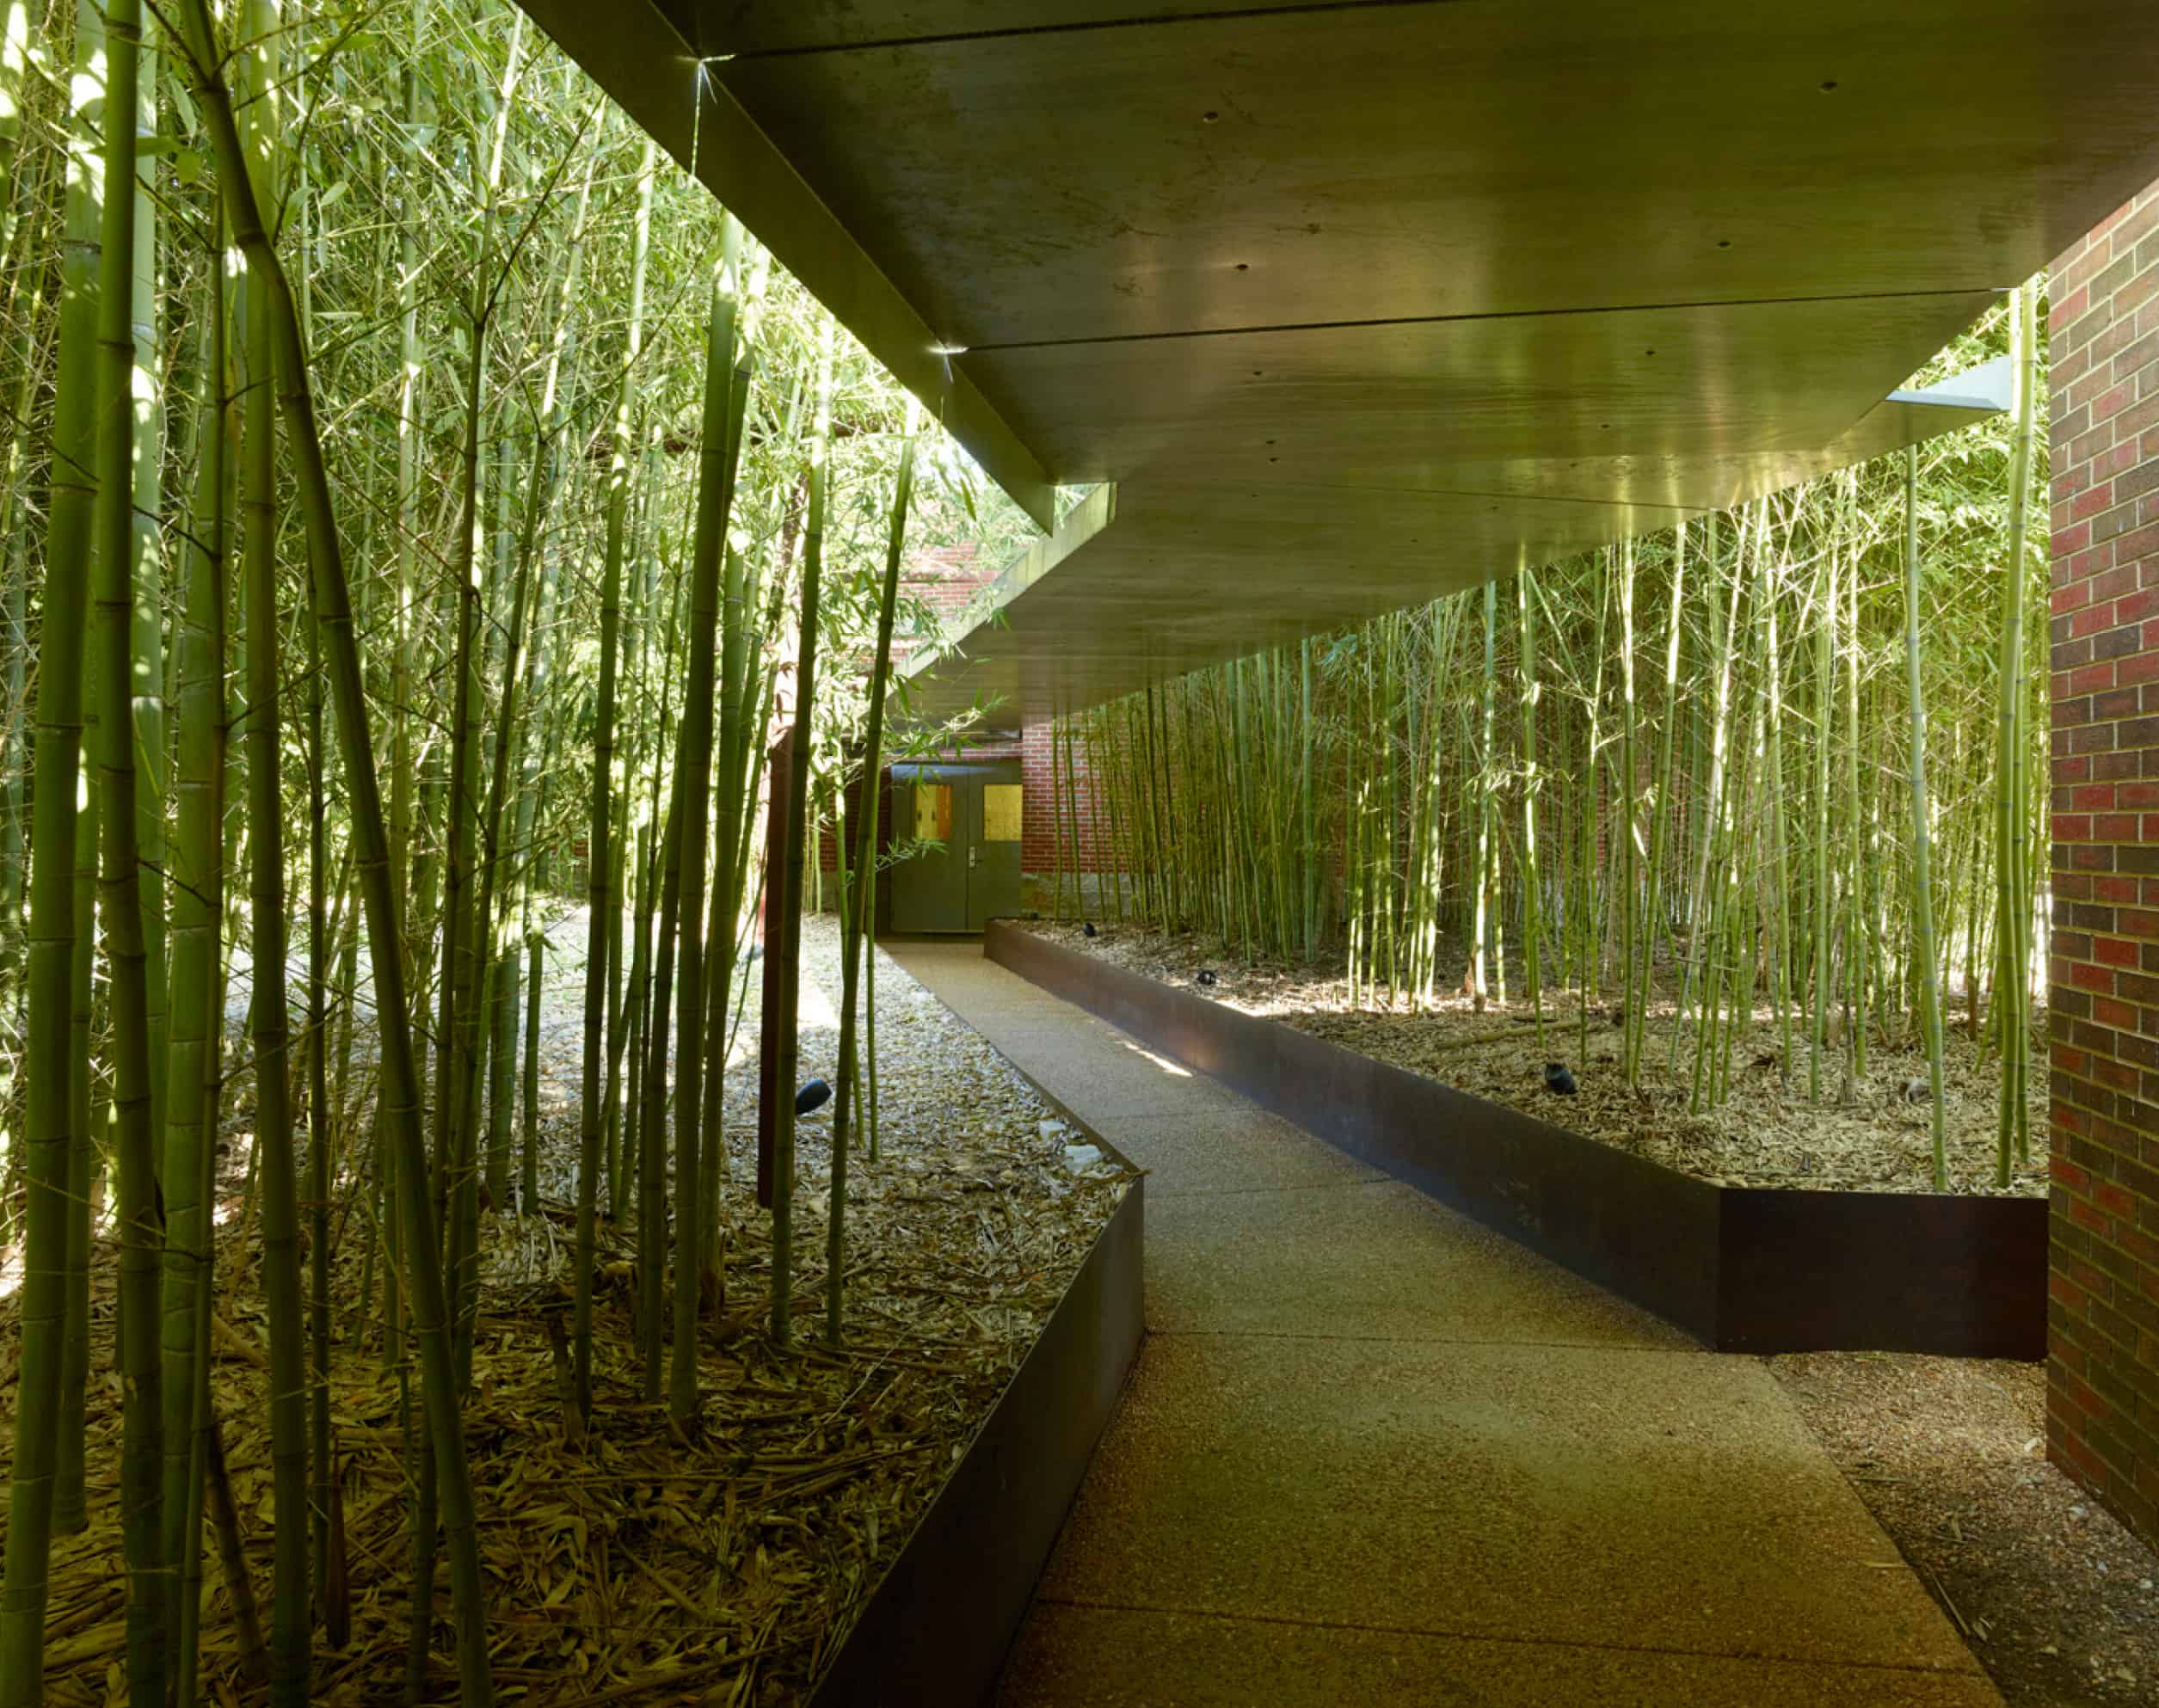 bamboo garden with walkway between buildings